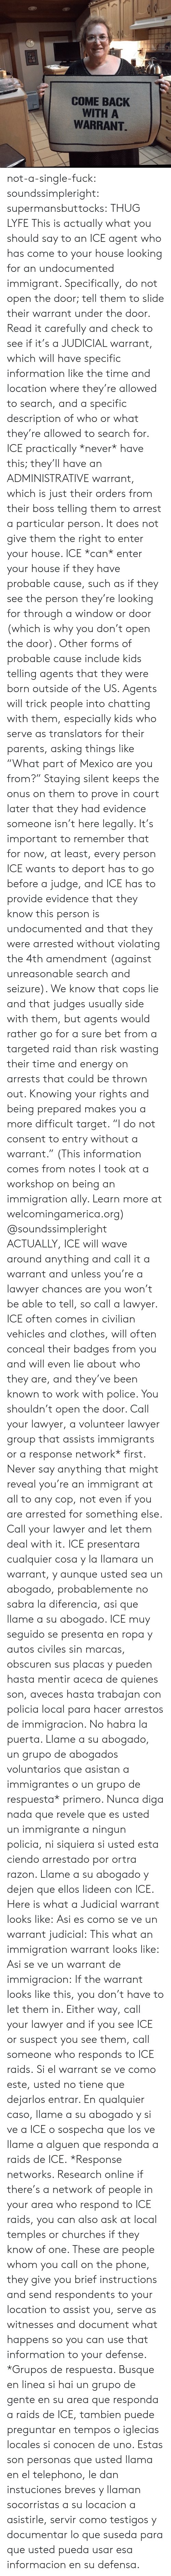 "probable: COME BACK  WITH A  WARRANT not-a-single-fuck:  soundssimpleright:  supermansbuttocks: THUG LYFE  This is actually what you should say to an ICE agent who has come to your house looking for an undocumented immigrant.  Specifically, do not open the door; tell them to slide their warrant under the door. Read it carefully and check to see if it's a JUDICIAL warrant, which will have specific information like the time and location where they're allowed to search, and a specific description of who or what they're allowed to search for. ICE practically *never* have this; they'll have an ADMINISTRATIVE warrant, which is just their orders from their boss telling them to arrest a particular person. It does not give them the right to enter your house.  ICE *can* enter your house if they have probable cause, such as if they see the person they're looking for through a window or door (which is why you don't open the door). Other forms of probable cause include kids telling agents that they were born outside of the US. Agents will trick people into chatting with them, especially kids who serve as translators for their parents, asking things like ""What part of Mexico are you from?"" Staying silent keeps the onus on them to prove in court later that they had evidence someone isn't here legally.  It's important to remember that for now, at least, every person ICE wants to deport has to go before a judge, and ICE has to provide evidence that they know this person is undocumented and that they were arrested without violating the 4th amendment (against unreasonable search and seizure). We know that cops lie and that judges usually side with them, but agents would rather go for a sure bet from a targeted raid than risk wasting their time and energy on arrests that could be thrown out. Knowing your rights and being prepared makes you a more difficult target.  ""I do not consent to entry without a warrant."" (This information comes from notes I took at a workshop on being an immigration ally. Learn more at welcomingamerica.org)  @soundssimpleright  ACTUALLY, ICE will wave around anything and call it a warrant and unless you're a lawyer chances are you won't be able to tell, so call a lawyer. ICE often comes in civilian vehicles and clothes, will often conceal their badges from you and will even lie about who they are, and they've been known to work with police. You shouldn't open the door. Call your lawyer, a volunteer lawyer group that assists immigrants or a response network* first. Never say anything that might reveal you're an immigrant at all to any cop, not even if you are arrested for something else. Call your lawyer and let them deal with it. ICE presentara cualquier cosa y la llamara un warrant, y aunque usted sea un abogado, probablemente no sabra la diferencia, asi que llame a su abogado. ICE muy seguido se presenta en ropa y autos civiles sin marcas, obscuren sus placas y pueden hasta mentir aceca de quienes son, aveces hasta trabajan con policia local para hacer arrestos de immigracion. No habra la puerta. Llame a su abogado, un grupo de abogados voluntarios que asistan a immigrantes o un grupo de respuesta* primero. Nunca diga nada que revele que es usted un immigrante a ningun policia, ni siquiera si usted esta ciendo arrestado por ortra razon. Llame a su abogado y dejen que ellos lideen con ICE. Here is what a Judicial warrant looks like: Asi es como se ve un warrant judicial: This what an immigration warrant looks like: Asi se ve un warrant de immigracion: If the warrant looks like this, you don't have to let them in. Either way, call your lawyer and if you see ICE or suspect you see them, call someone who responds to ICE raids. Si el warrant se ve como este, usted no tiene que dejarlos entrar. En qualquier caso, llame a su abogado y si ve a ICE o sospecha que los ve llame a alguen que responda a raids de ICE.  *Response networks. Research online if there's a network of people in your area who respond to ICE raids, you can also ask at local temples or churches if they know of one. These are people whom you call on the phone, they give you brief instructions and send respondents to your location to assist you, serve as witnesses and document what happens so you can use that information to your defense. *Grupos de respuesta. Busque en linea si hai un grupo de gente en su area que responda a raids de ICE, tambien puede preguntar en tempos o iglecias locales si conocen de uno. Estas son personas que usted llama en el telephono, le dan instuciones breves y llaman socorristas a su locacion a asistirle, servir como testigos y documentar lo que suseda para que usted pueda usar esa informacion en su defensa."